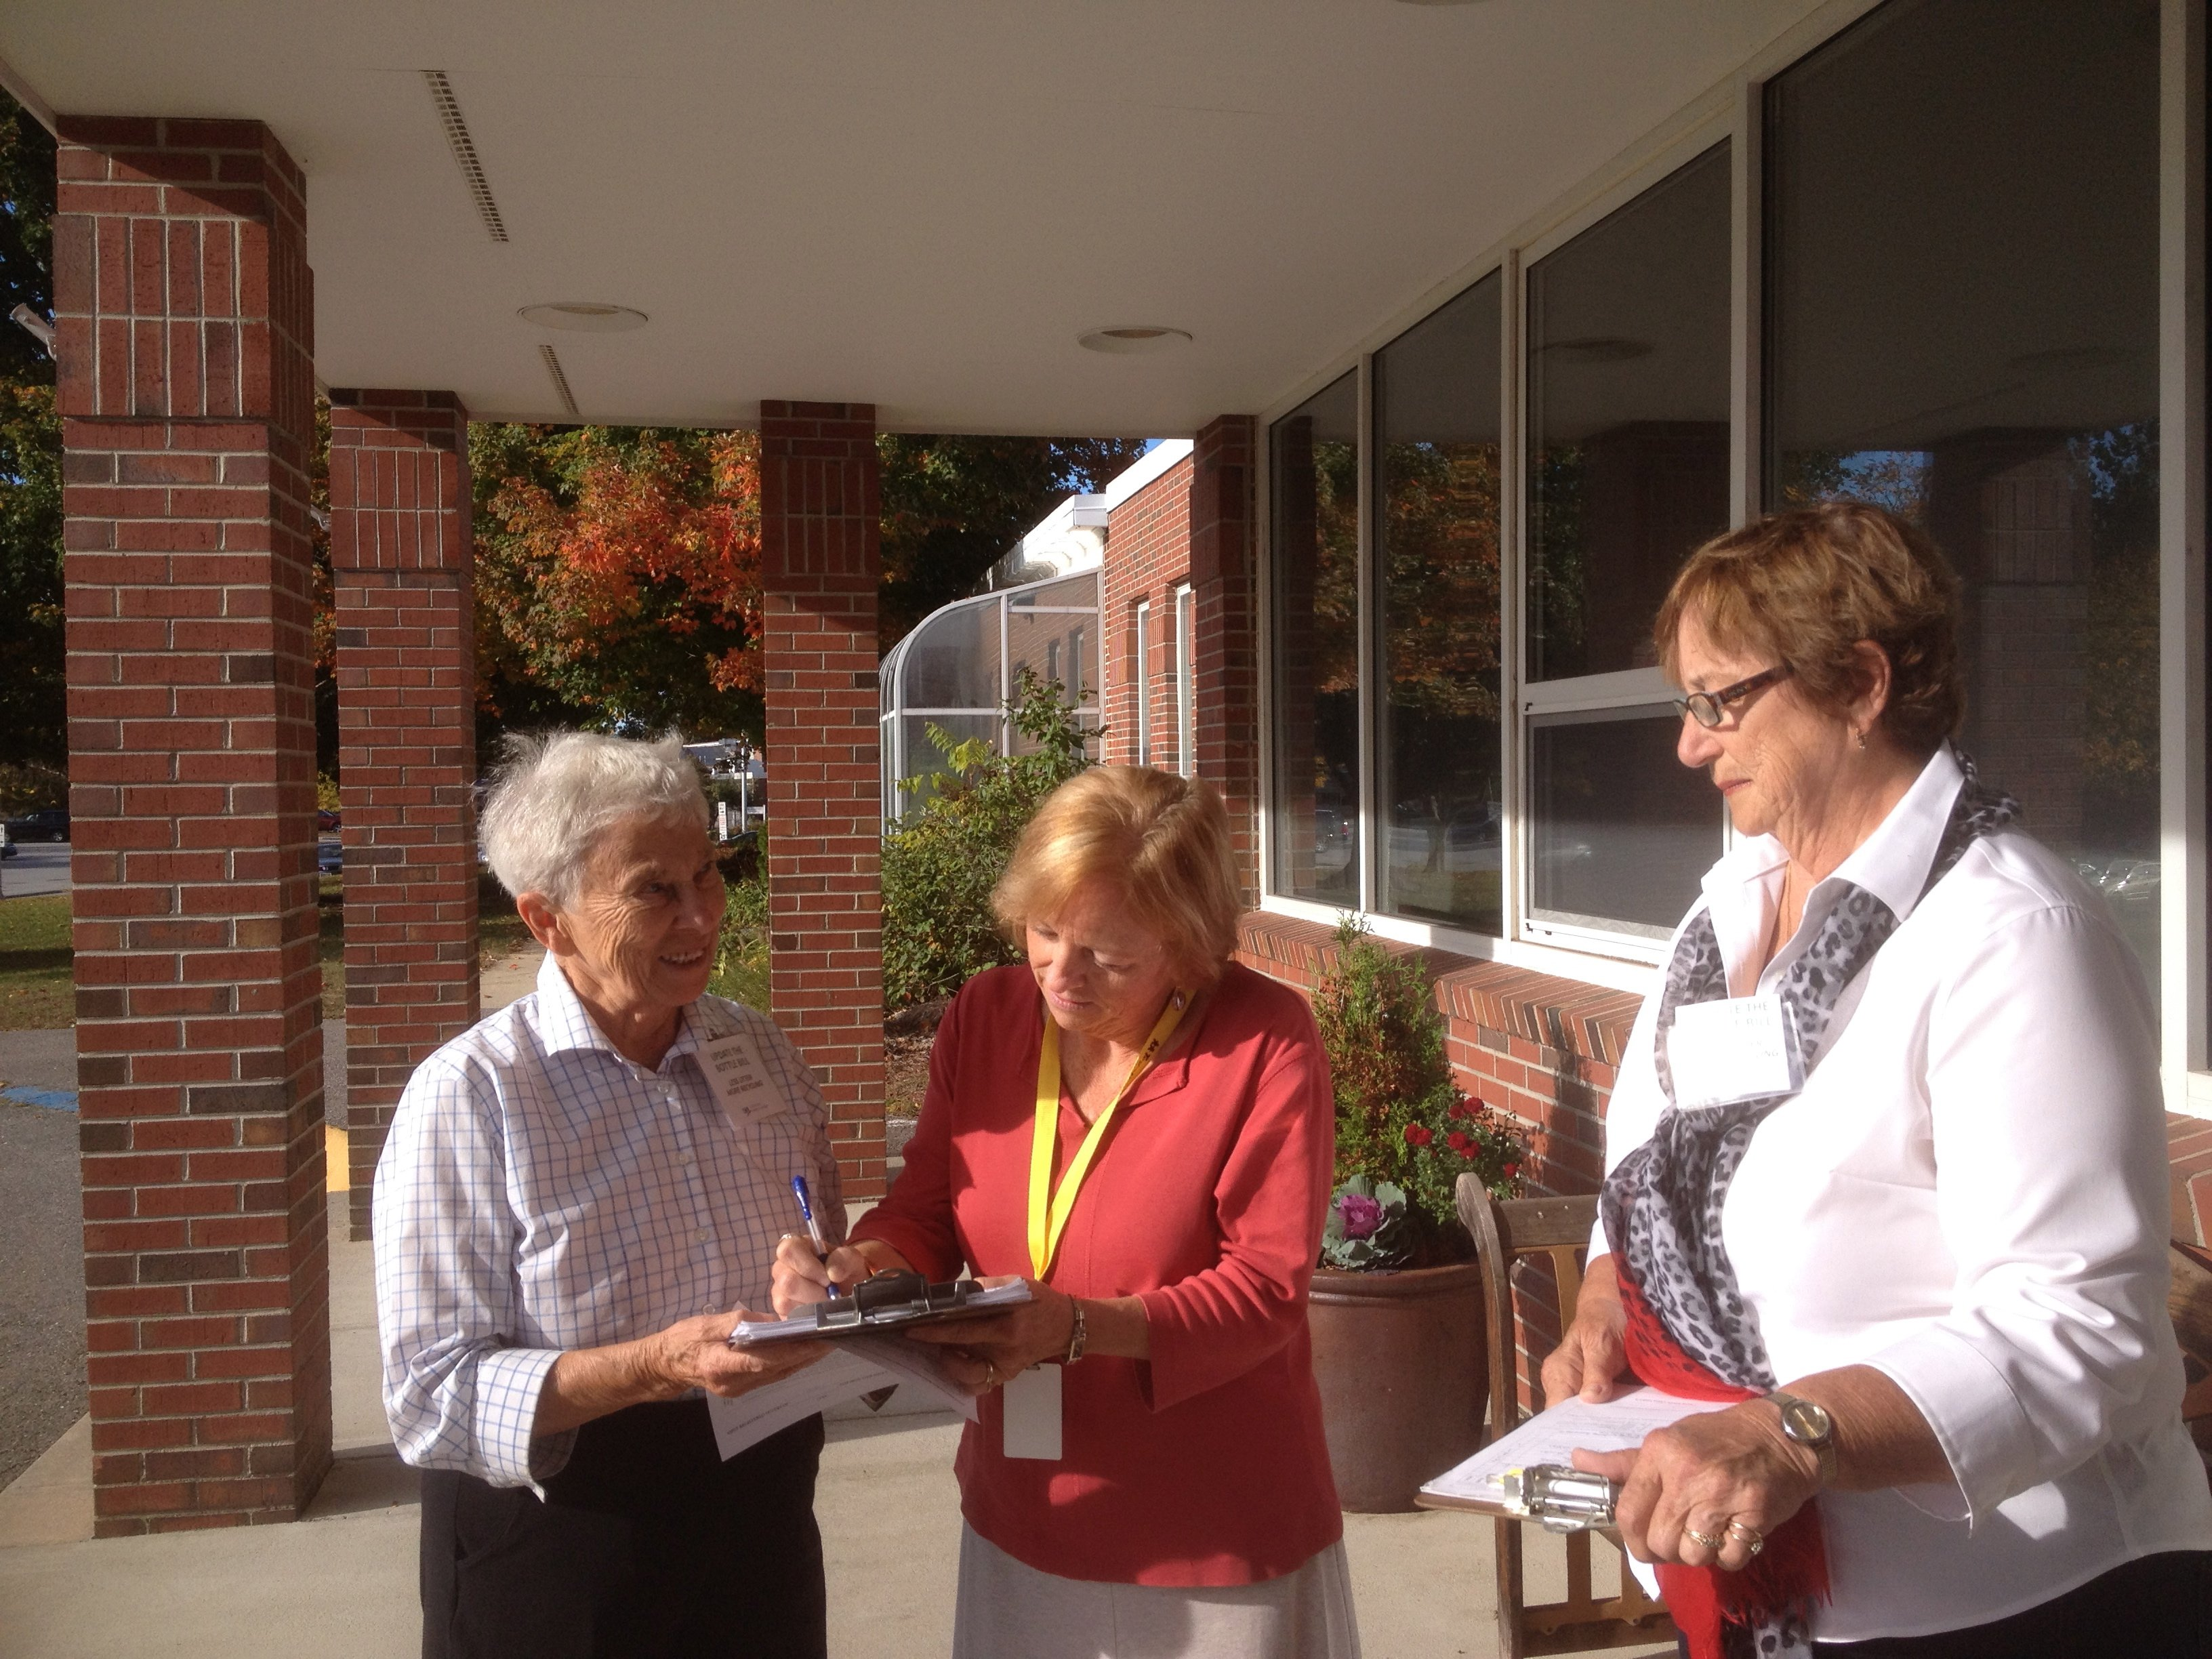 Collecting signature in Groton